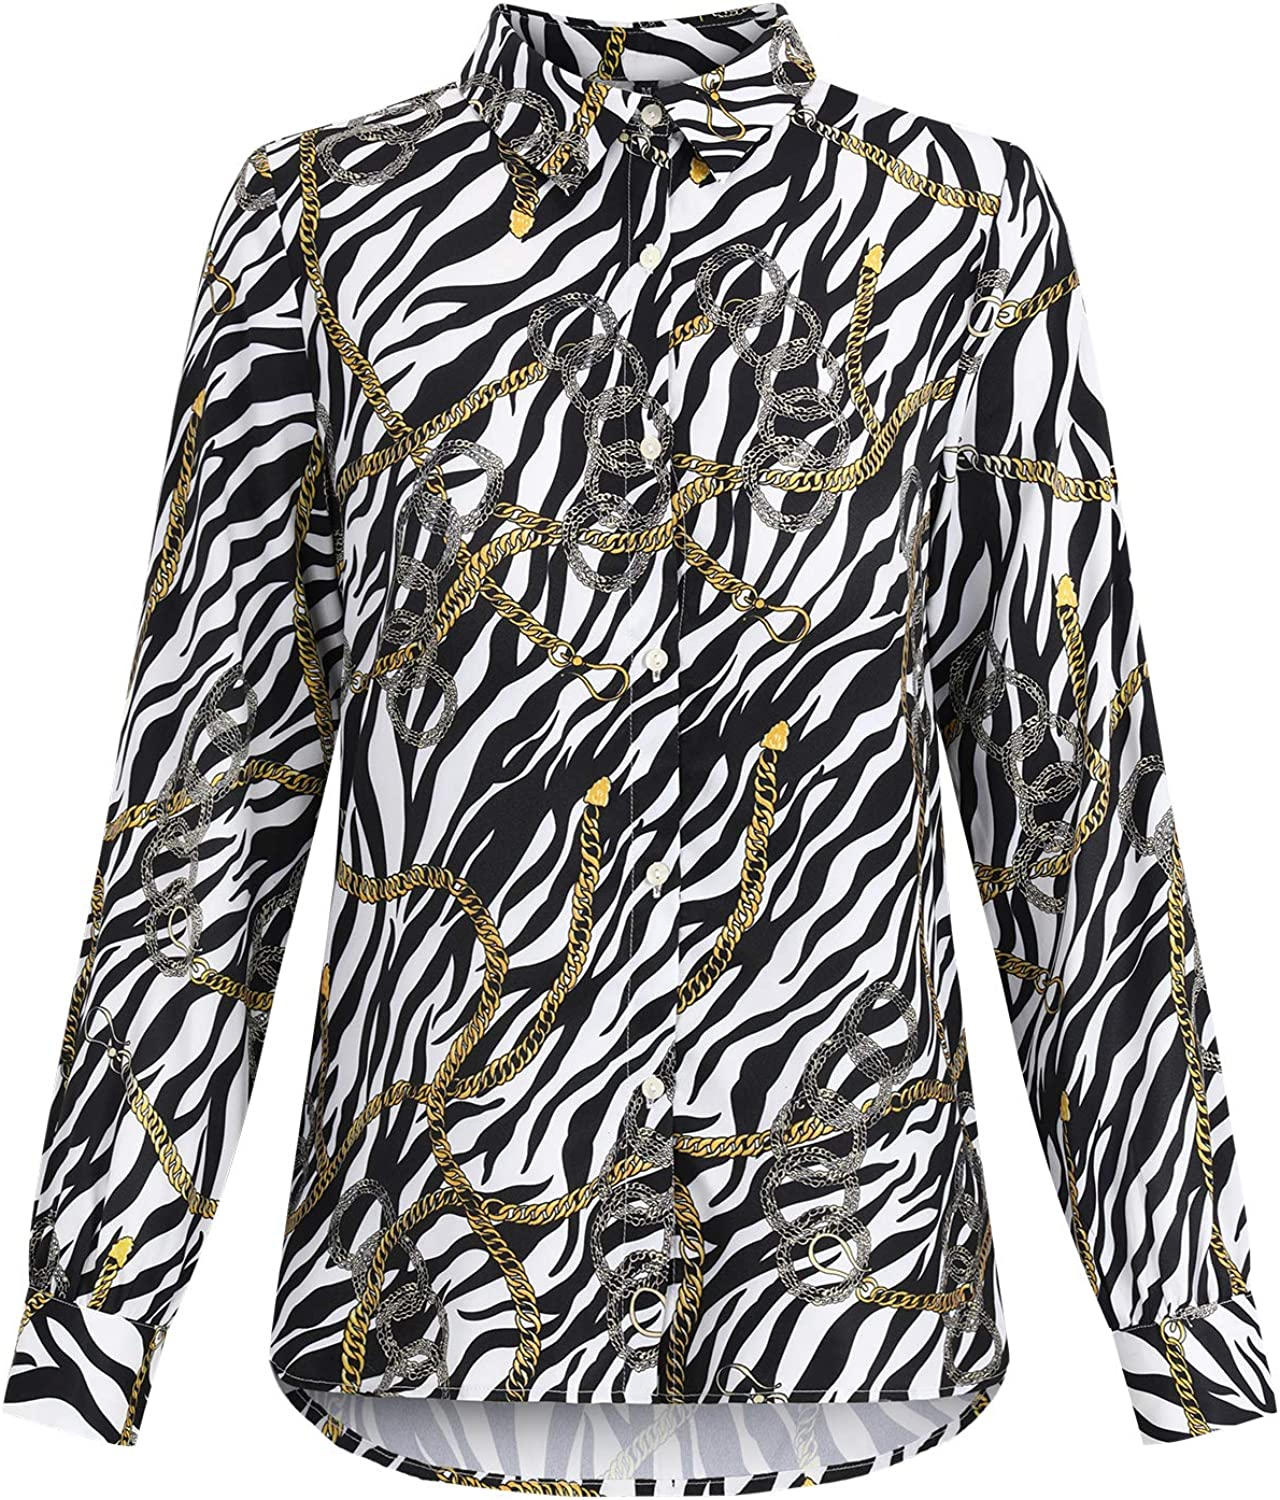 STYLEWORD Women's Long Sleeve Printed Blouses Top Chiffon Button-Down Shirts